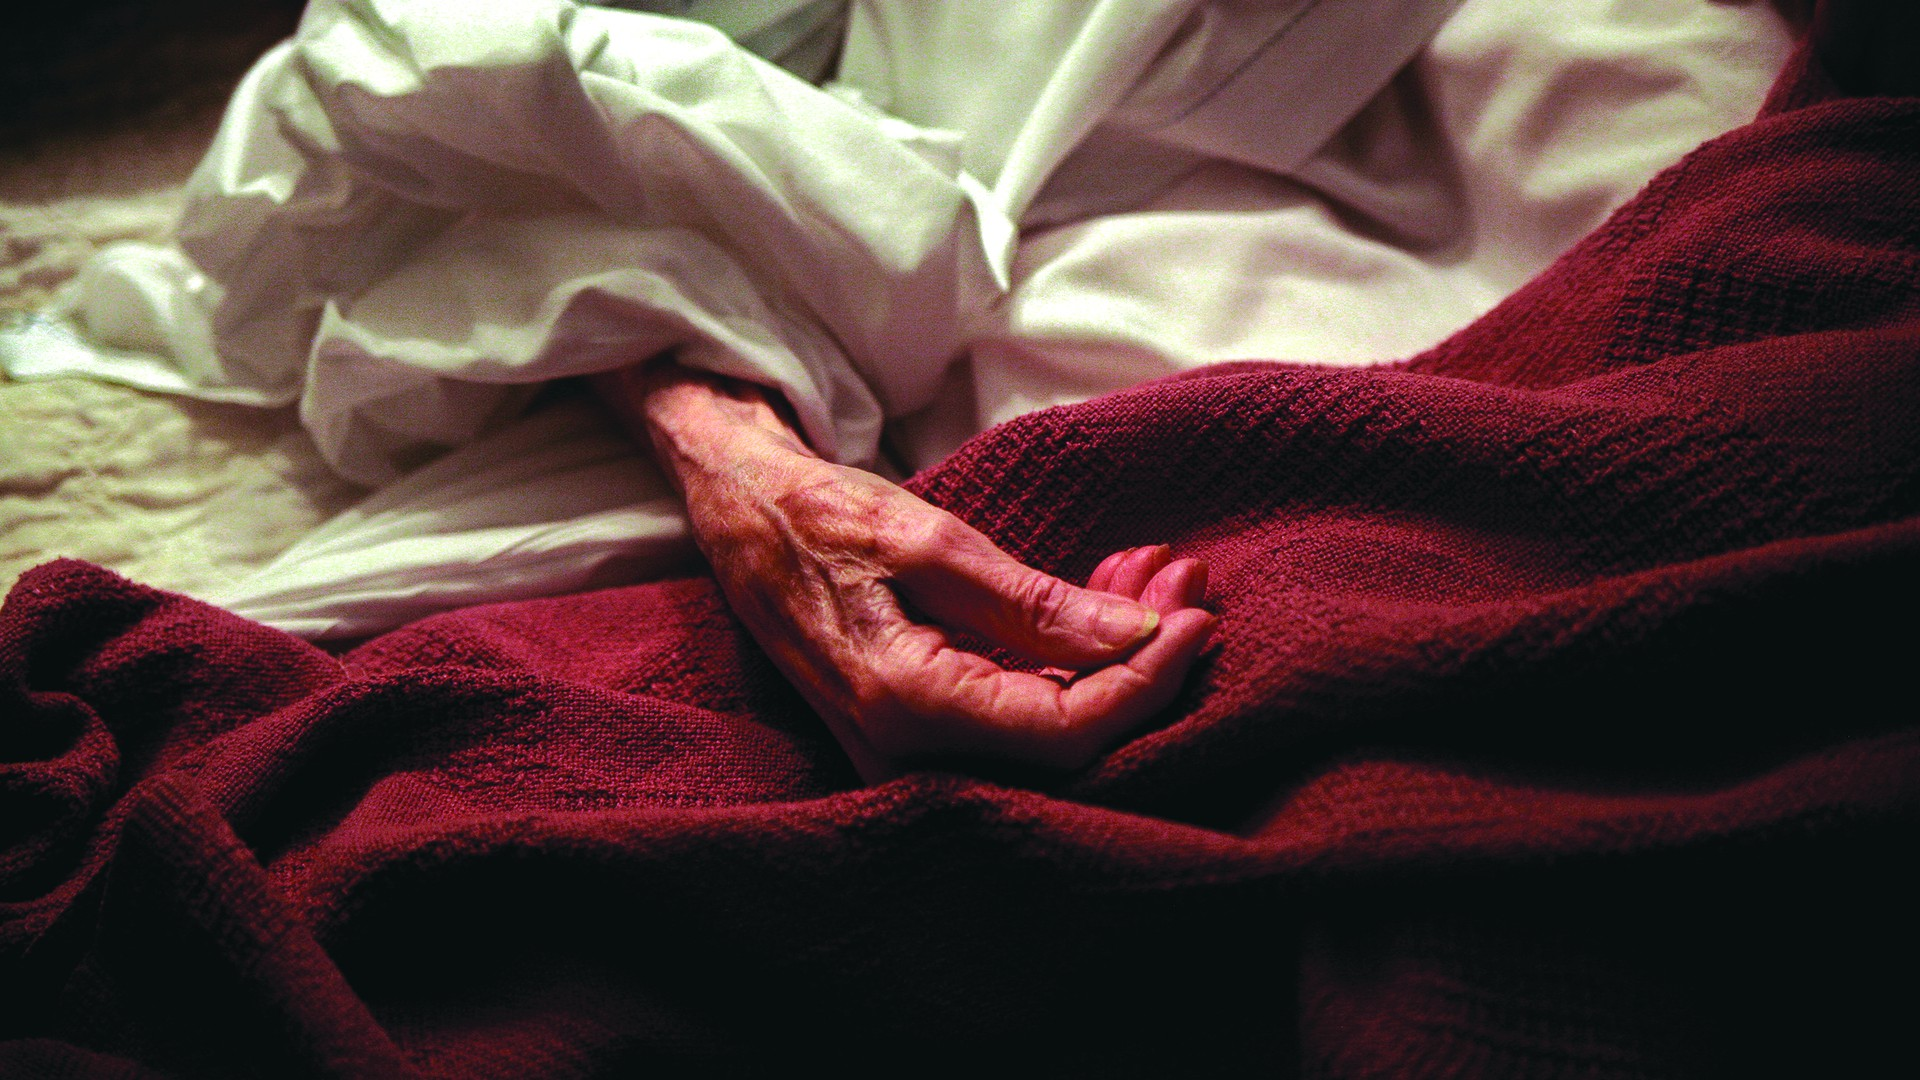 red blanket on hospital bed with an elderly hand on top